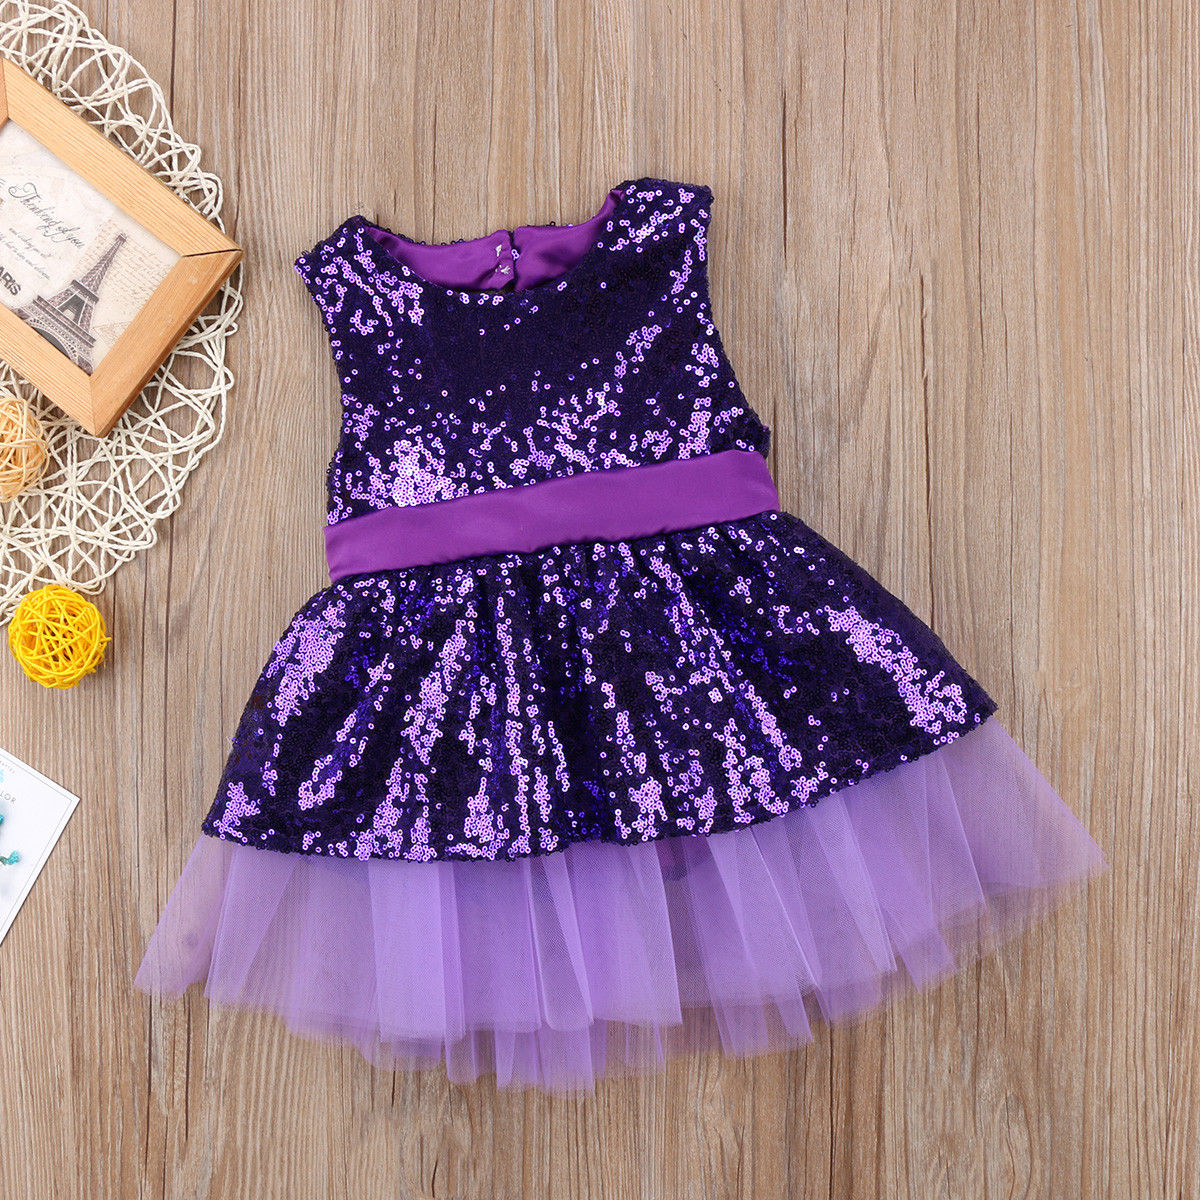 Toddle Kids Baby Girls Heart Sequins Princess Shining Wedding Gown Formal Dress